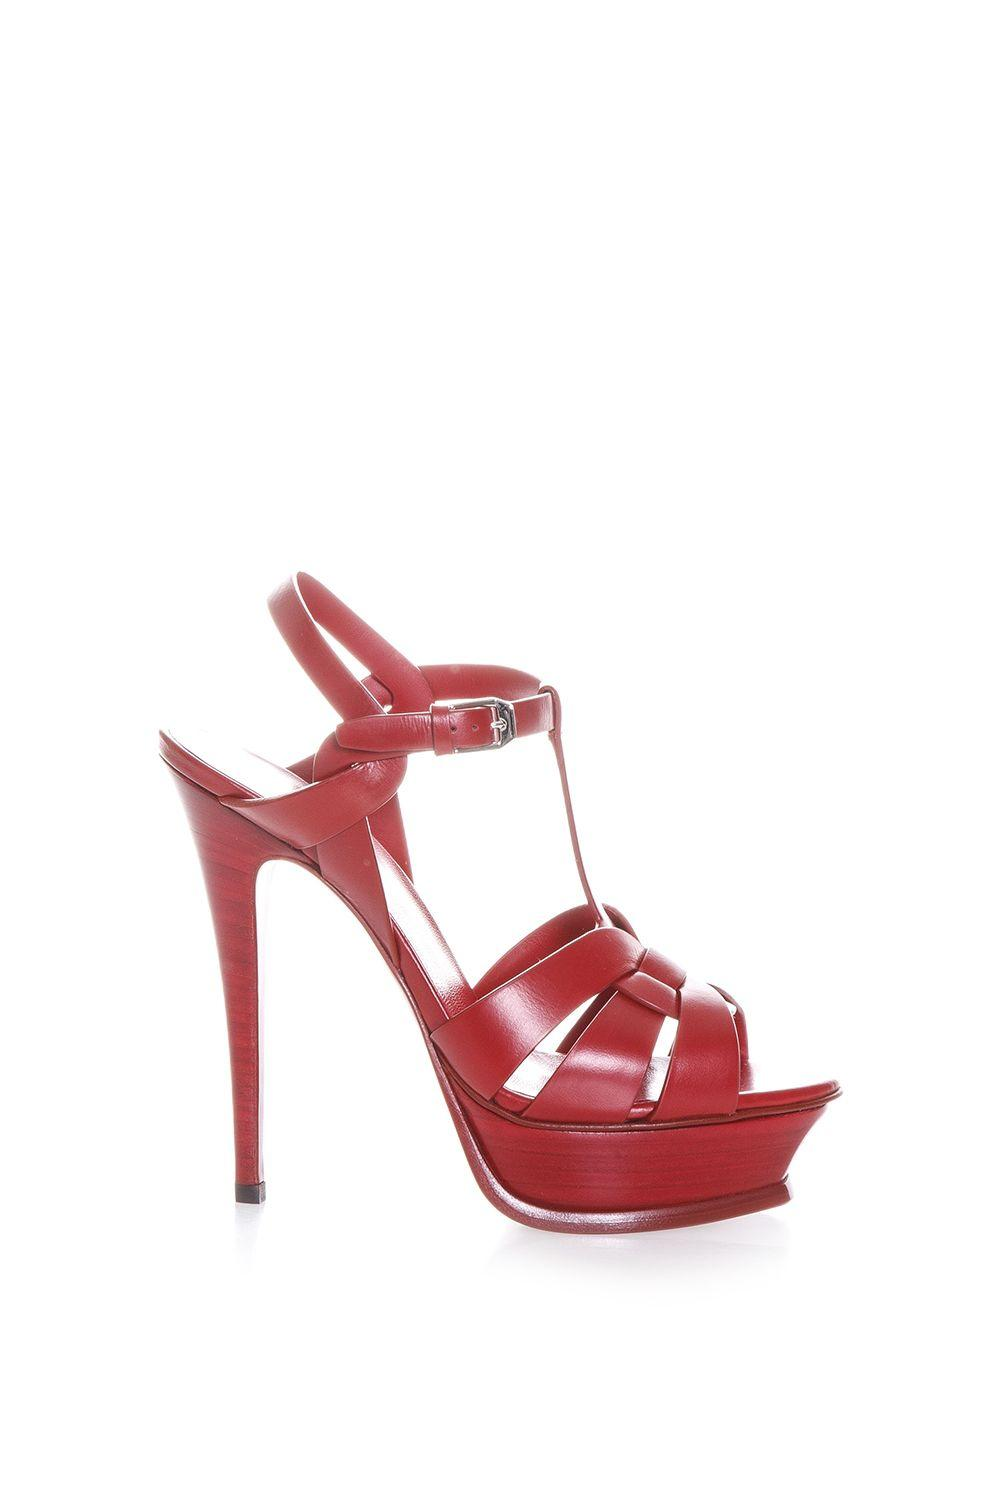 Saint Laurent Tribute Leather Sandals In New Red